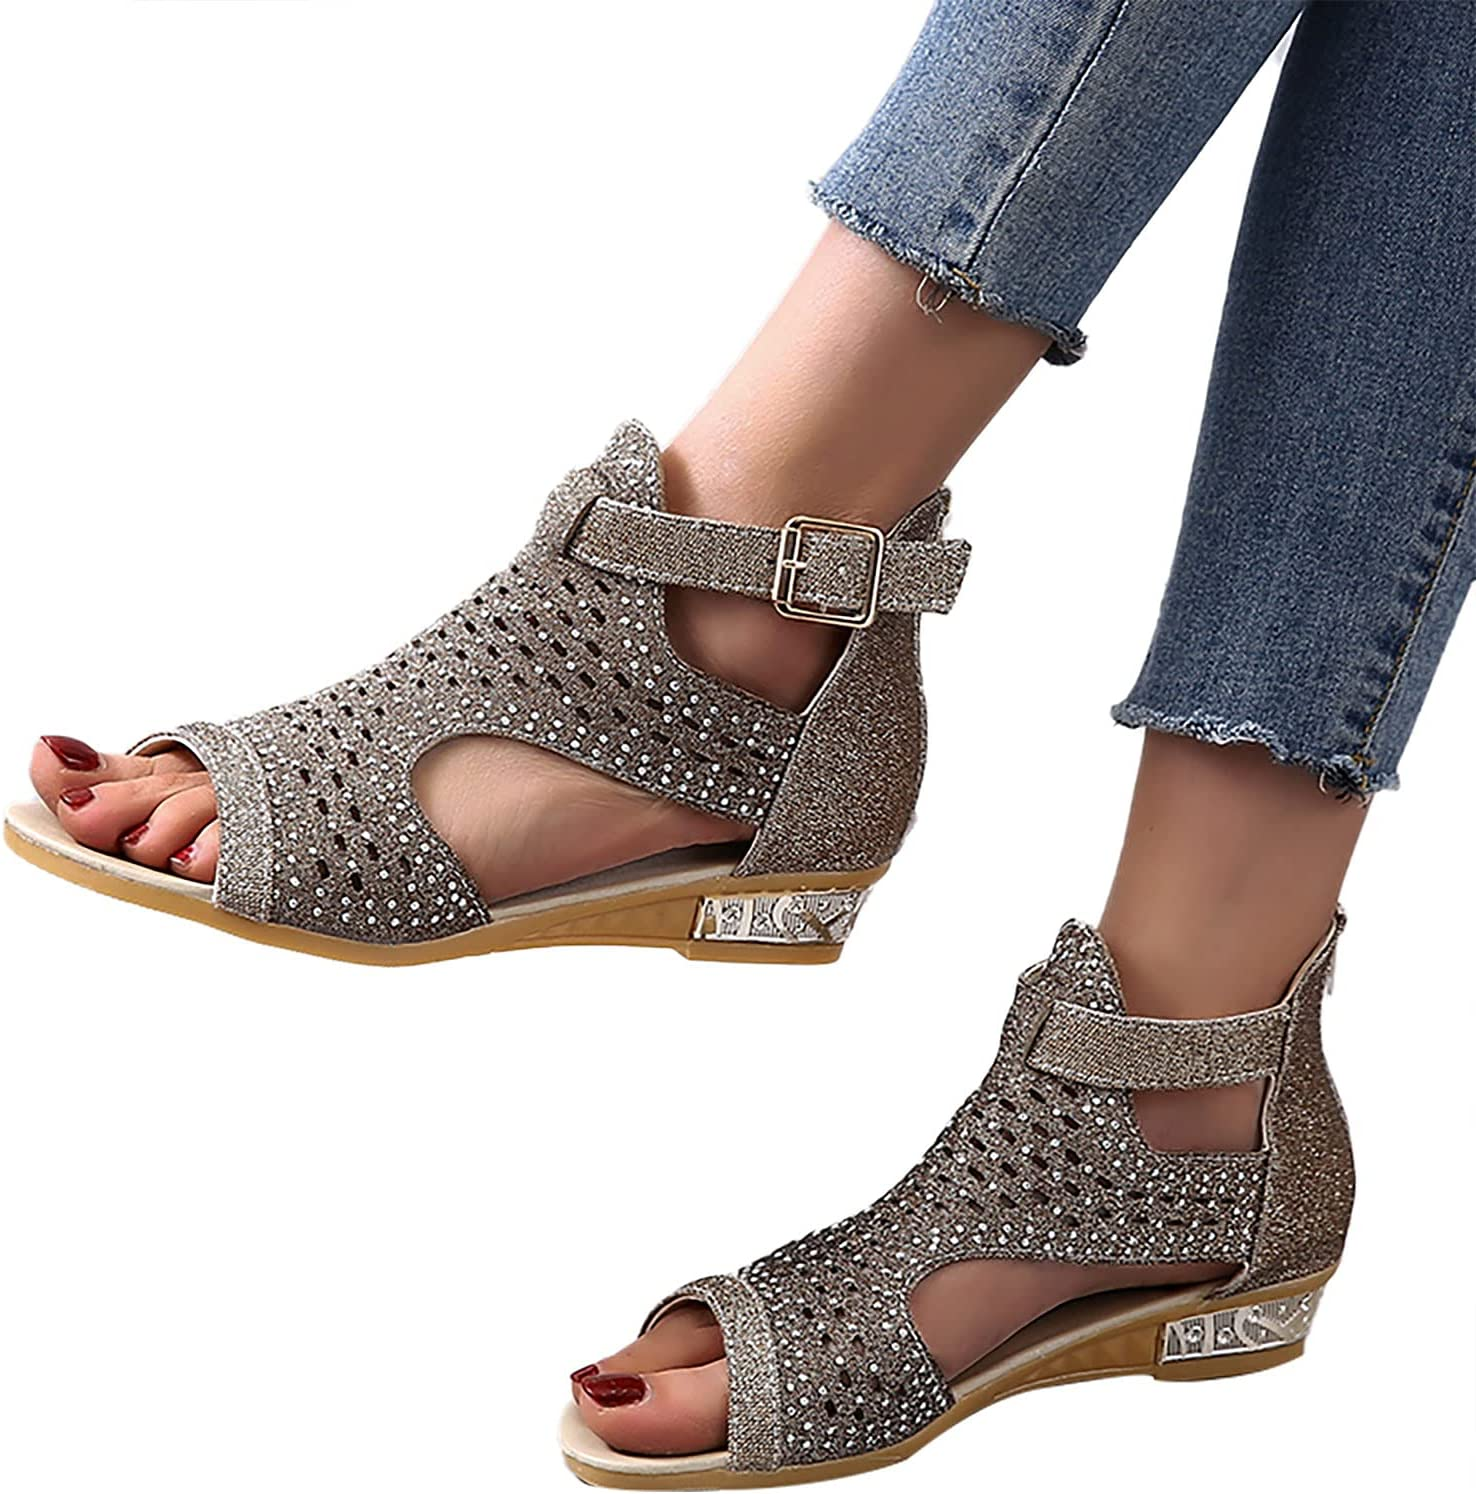 XUELIXIANG Women Flat Sandals Ladies Mout Hollow Fish Popular Price reduction product Rhinestone